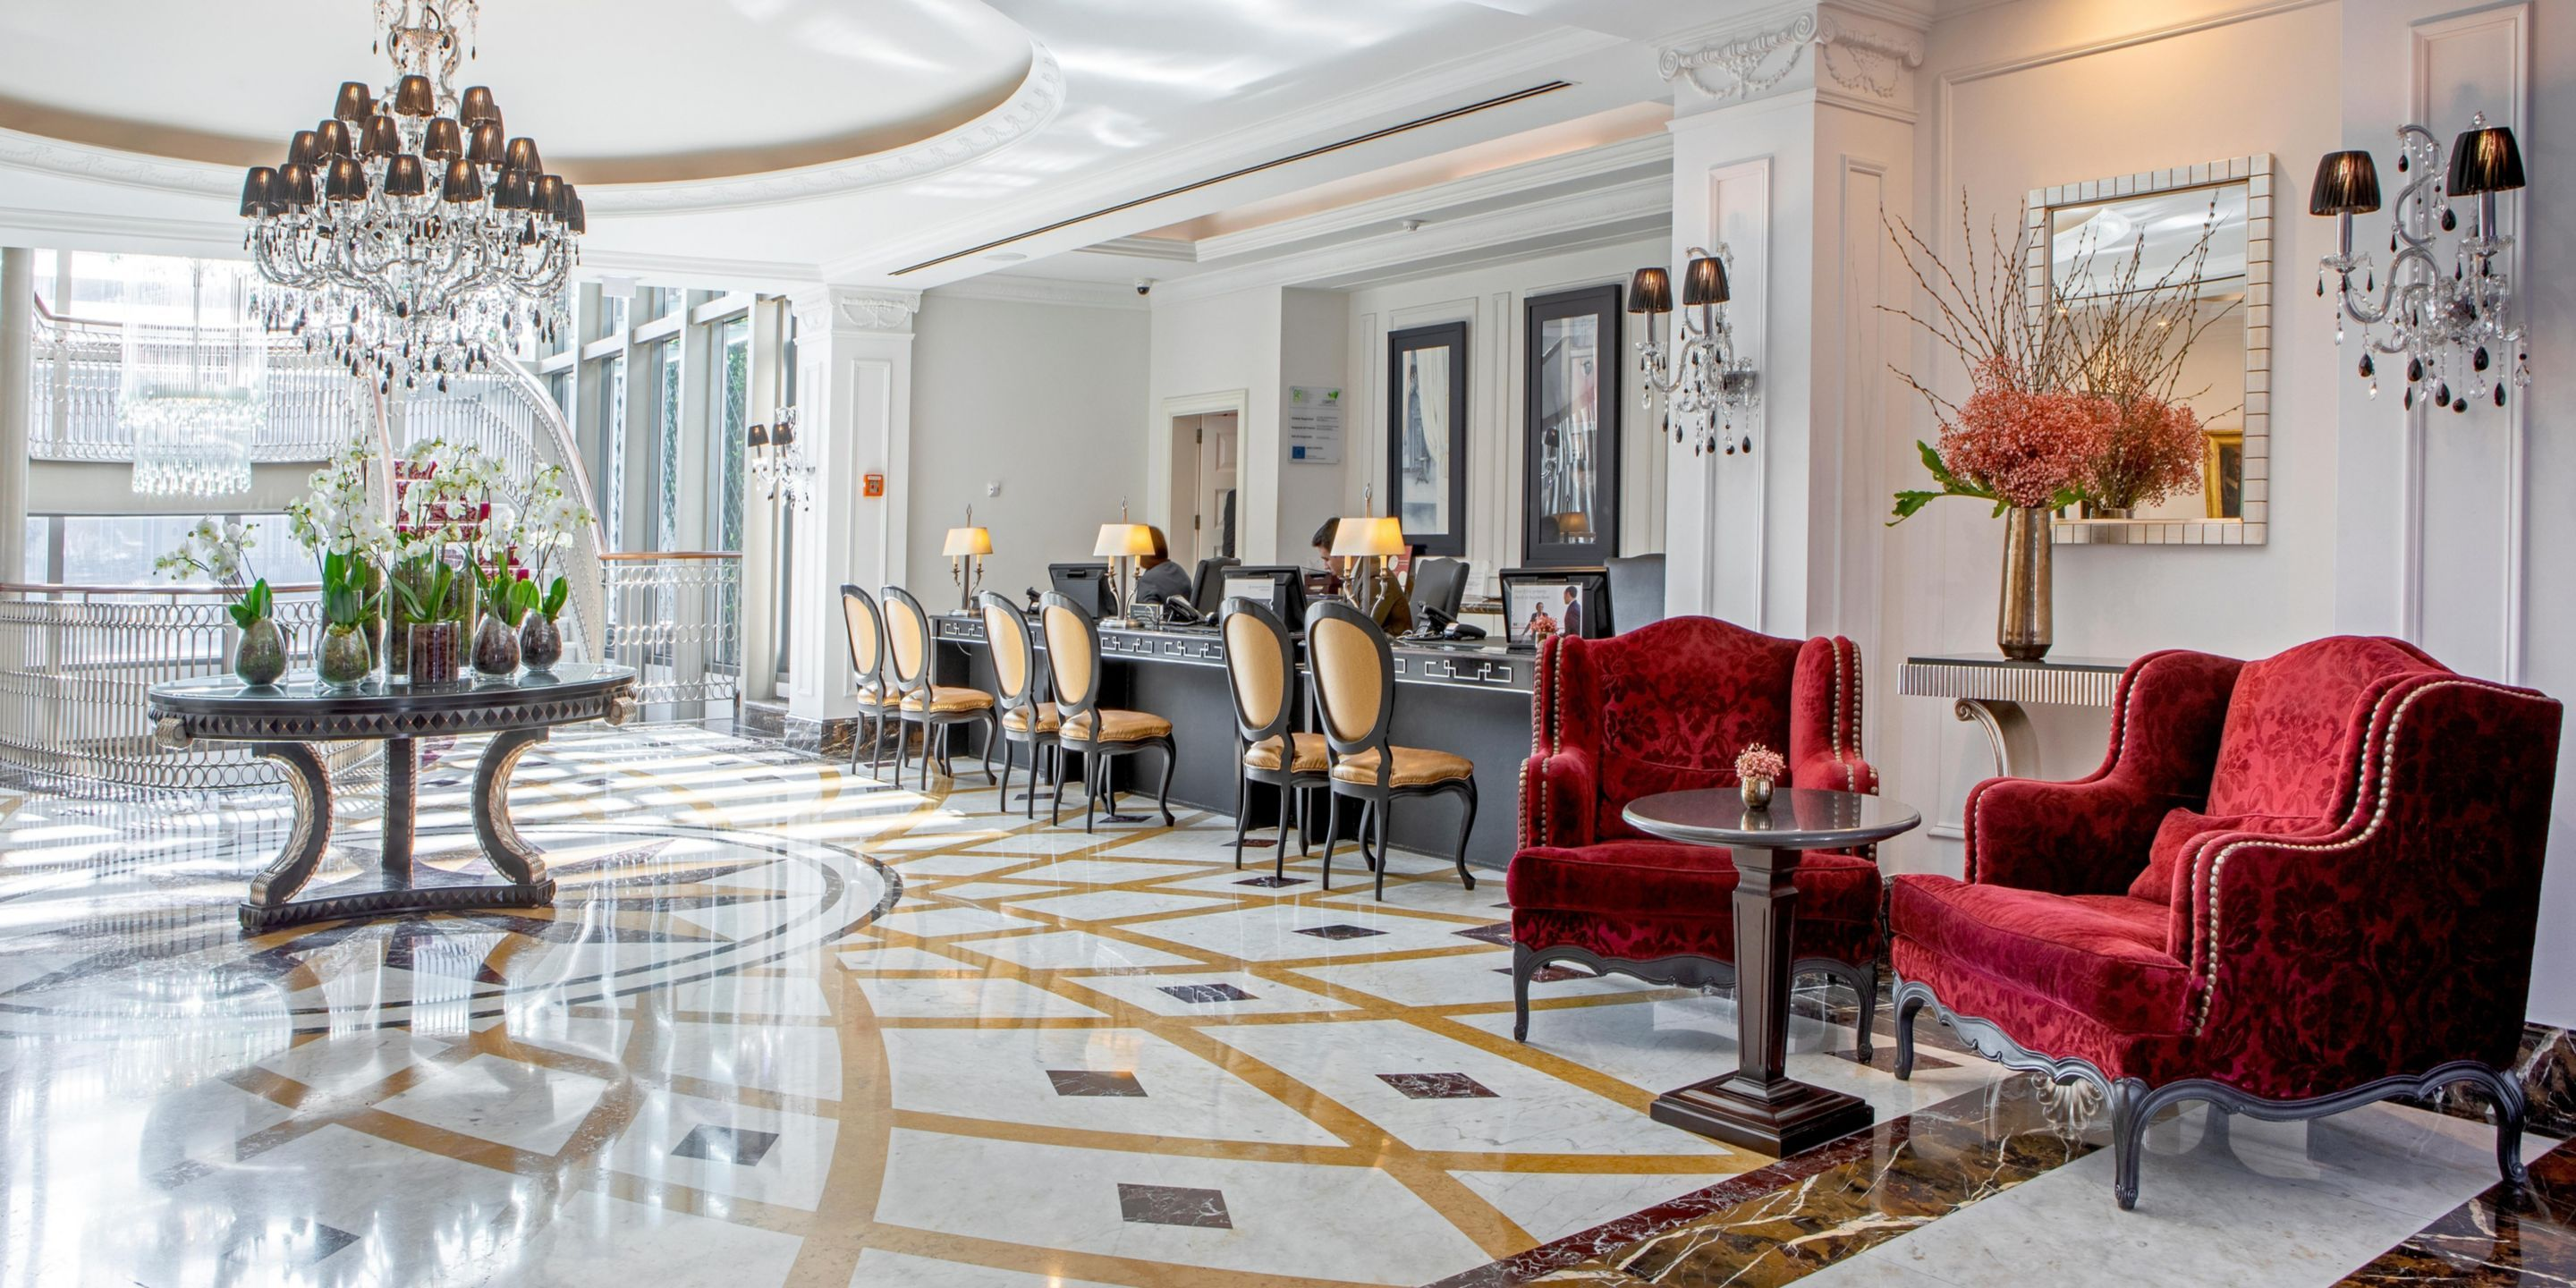 City Guide: Discover The Best From Porto city guide City Guide: Discover The Best From Porto intercontinental porto 5857430298 2x1